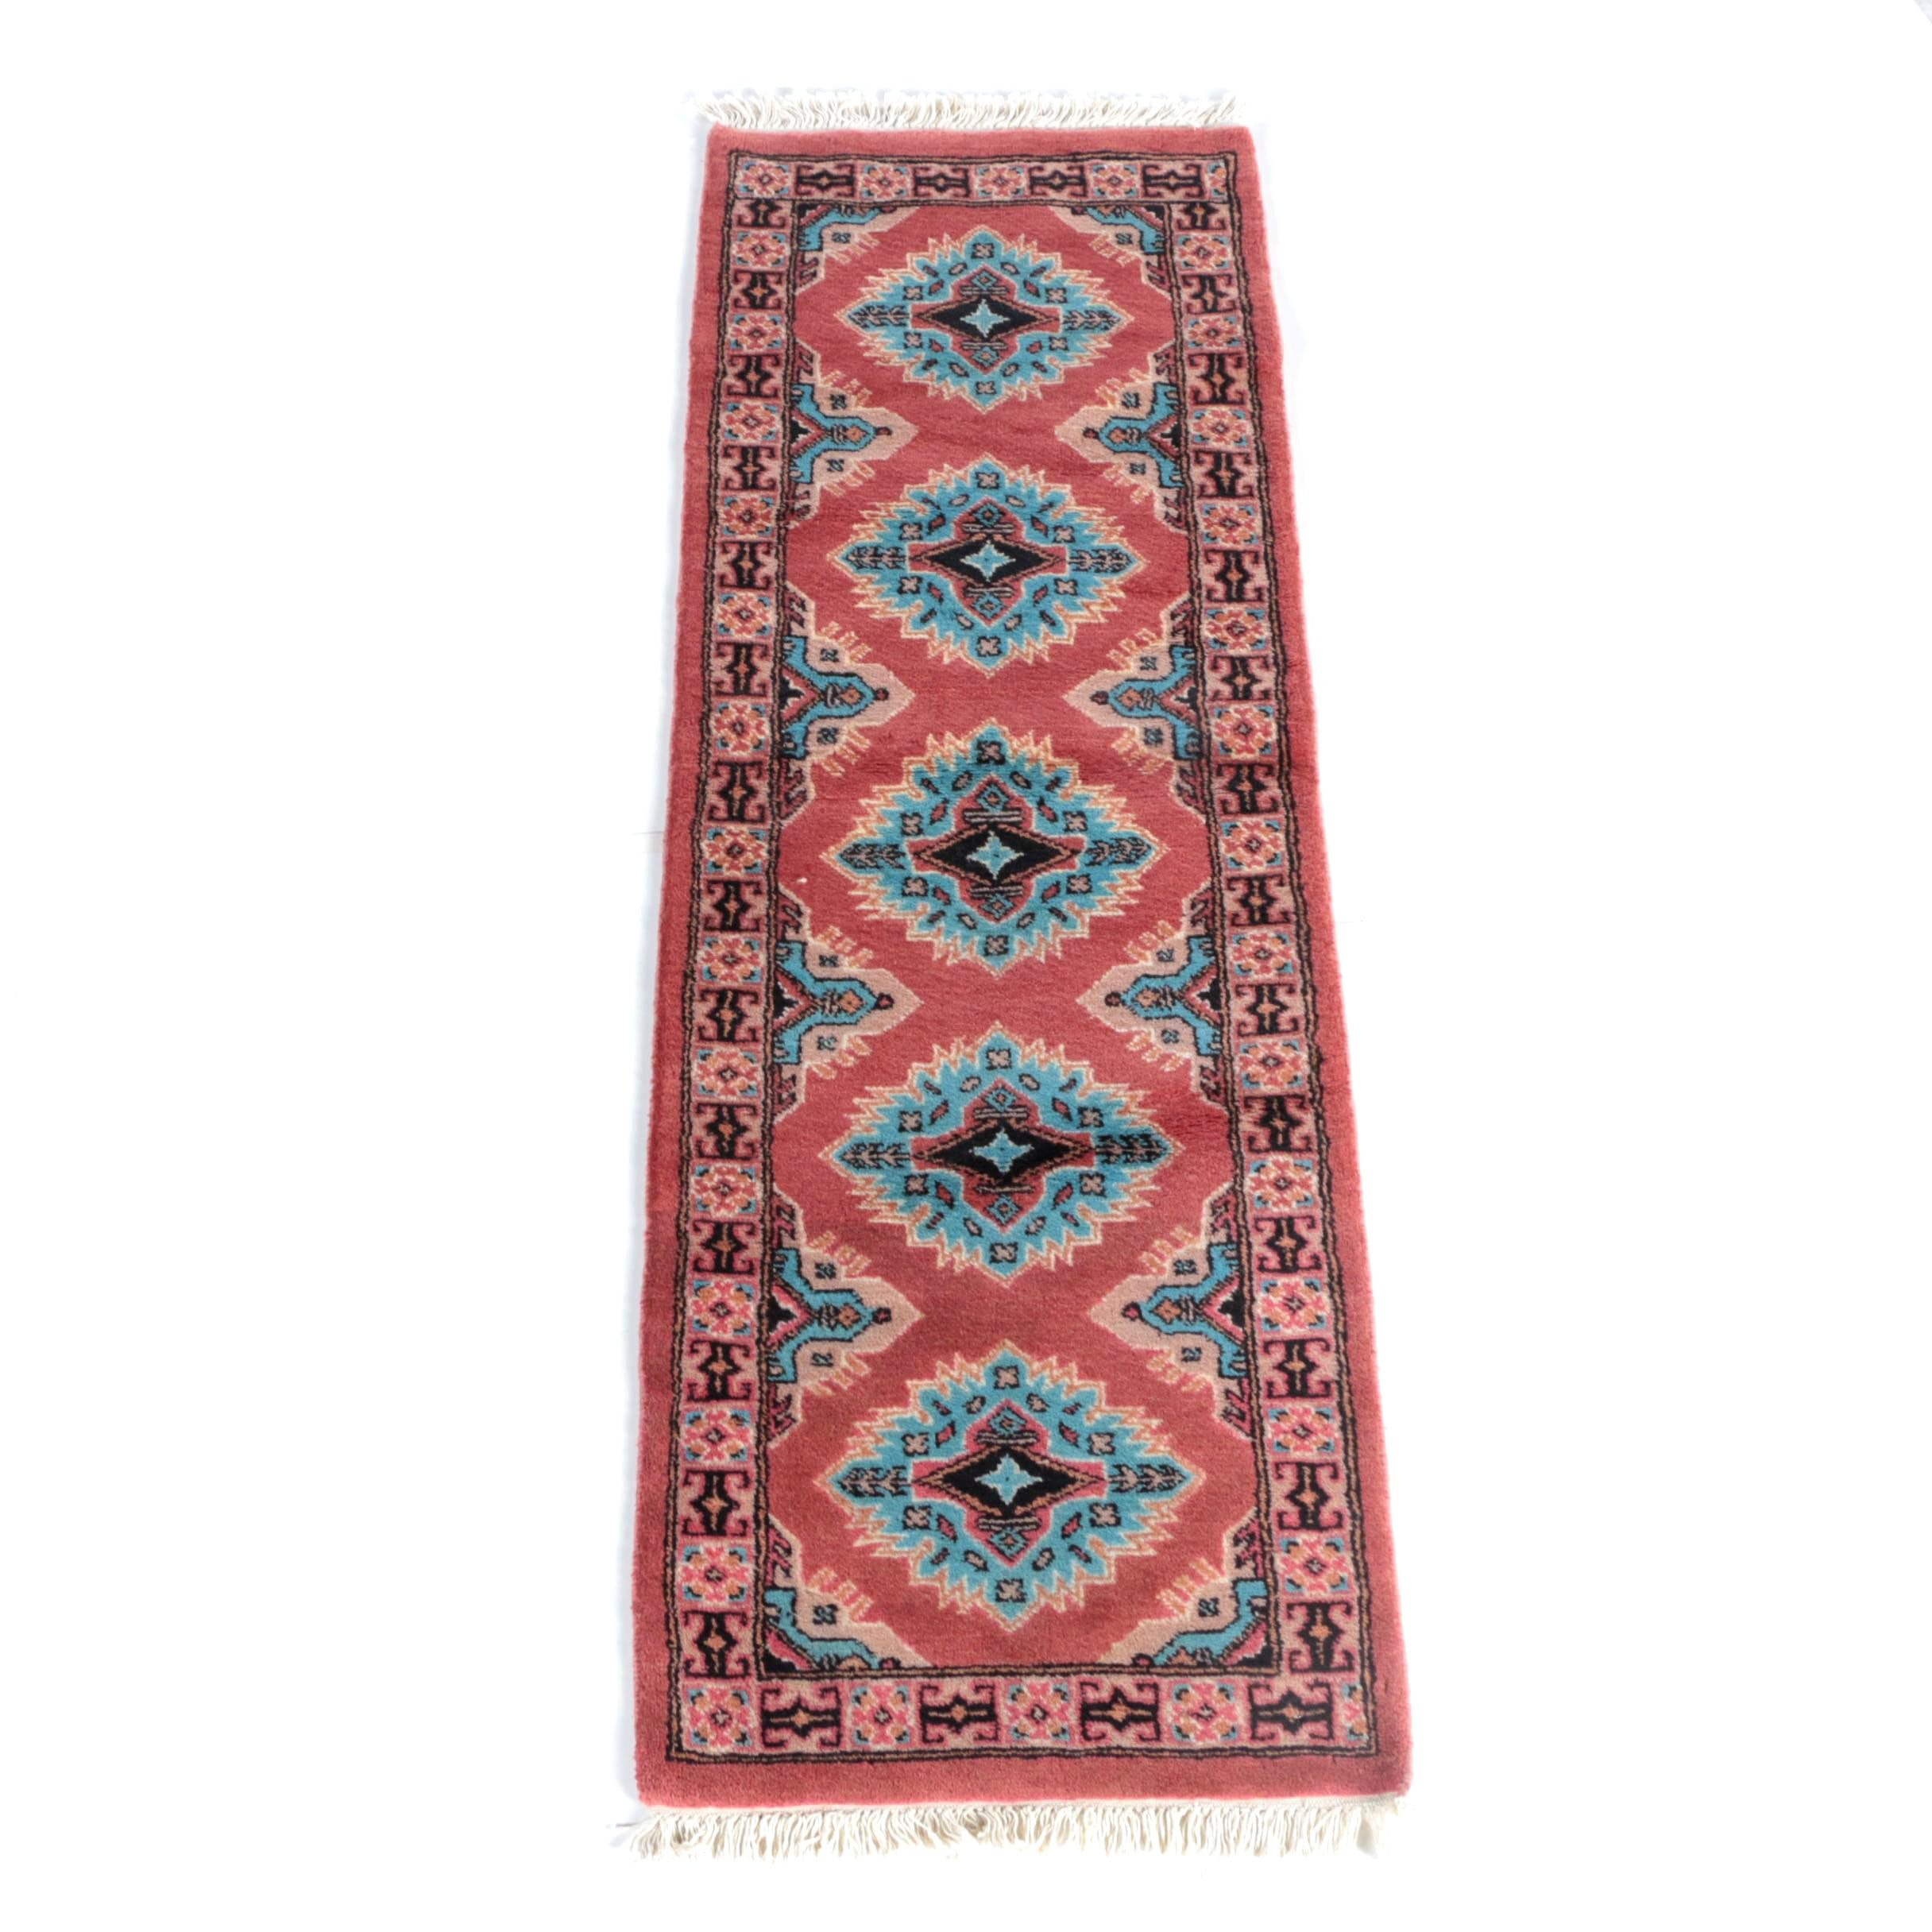 Hand-Knotted Pak-Kazak Wool Carpet Runner